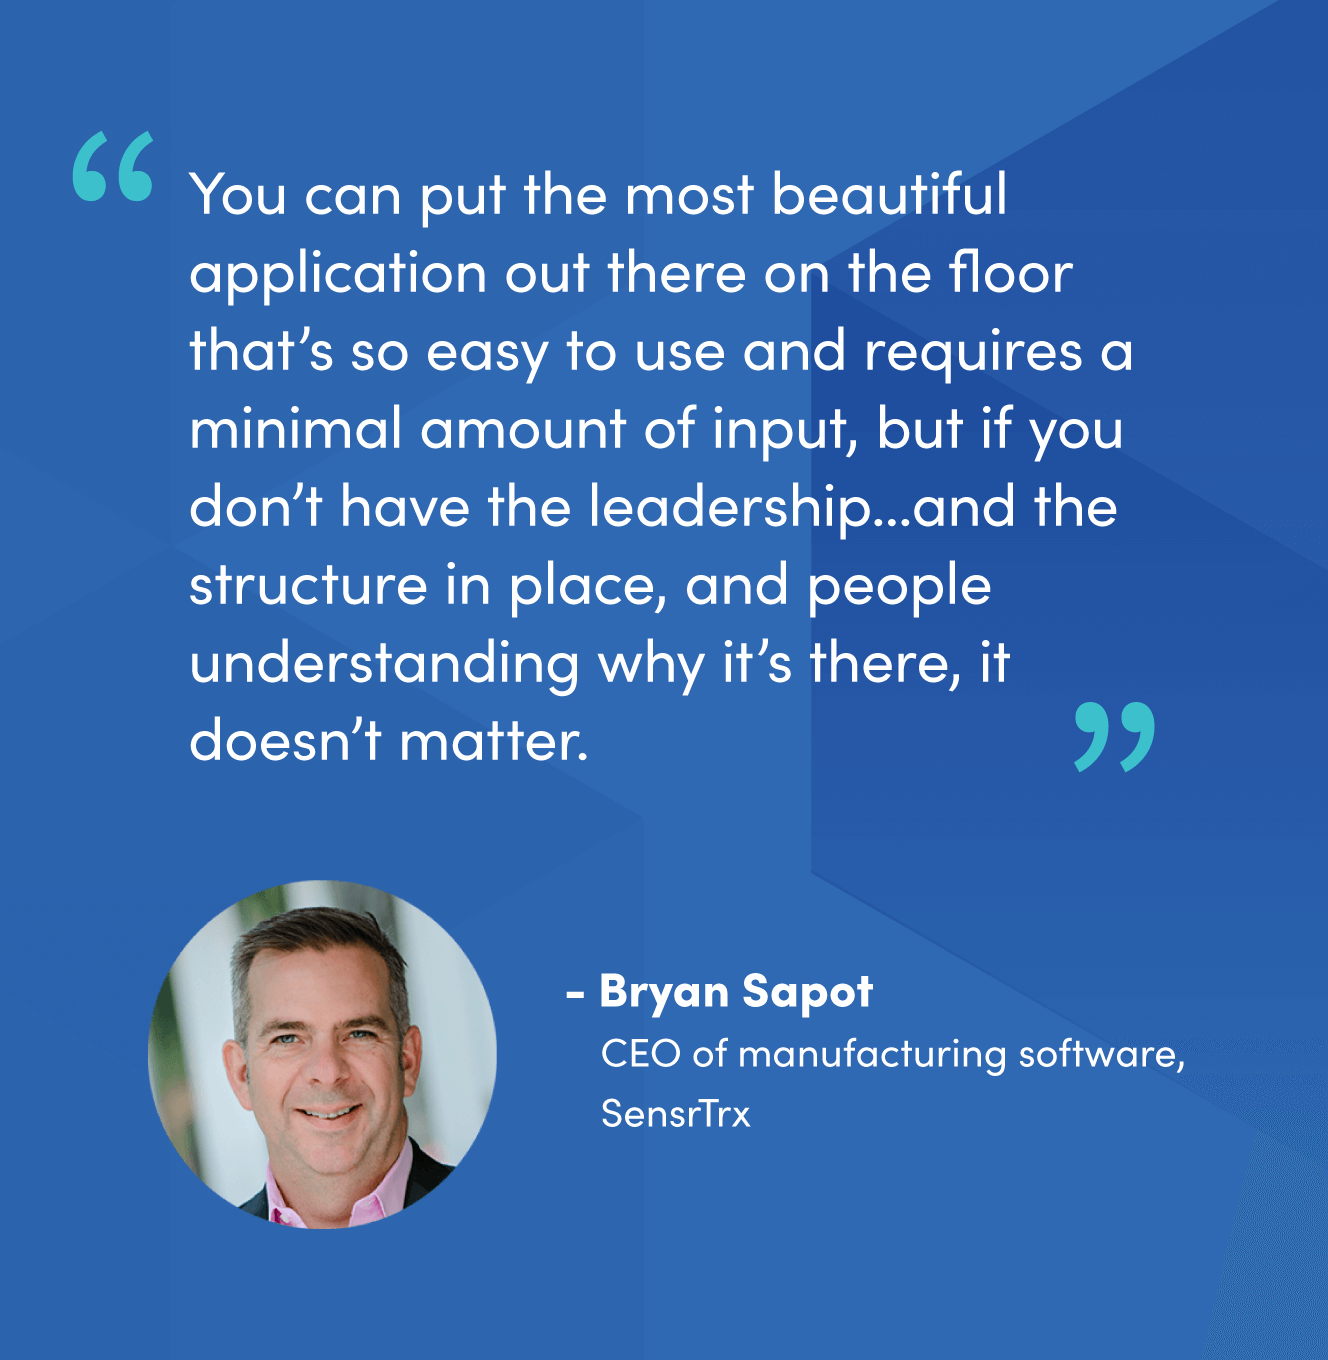 Quote from Bryan Sapot